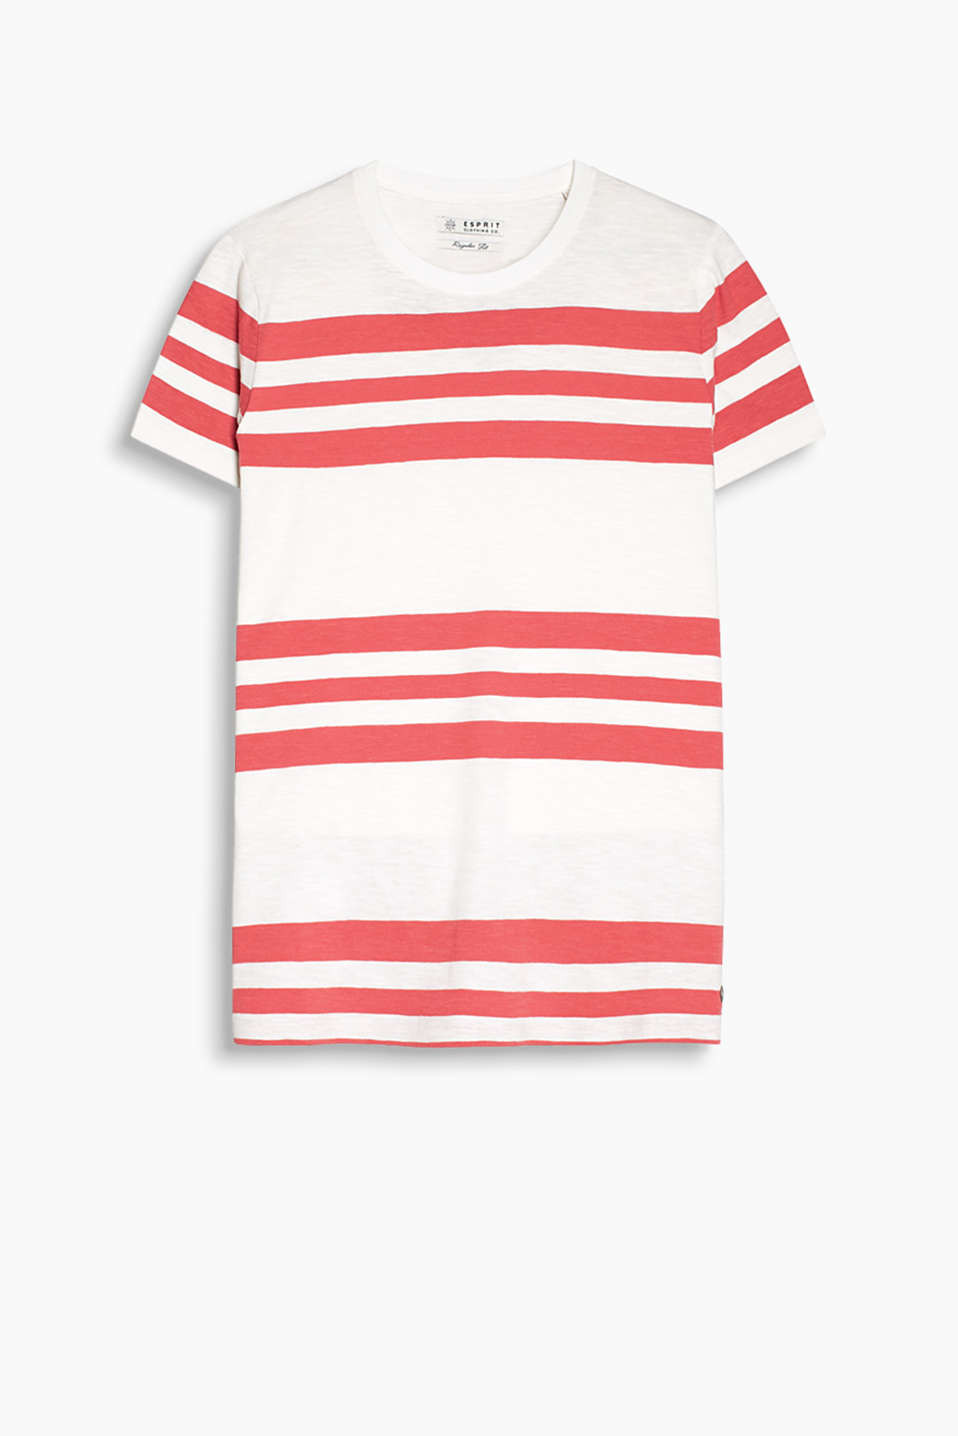 T-shirt with coloured stripes, made of dense slub jersey